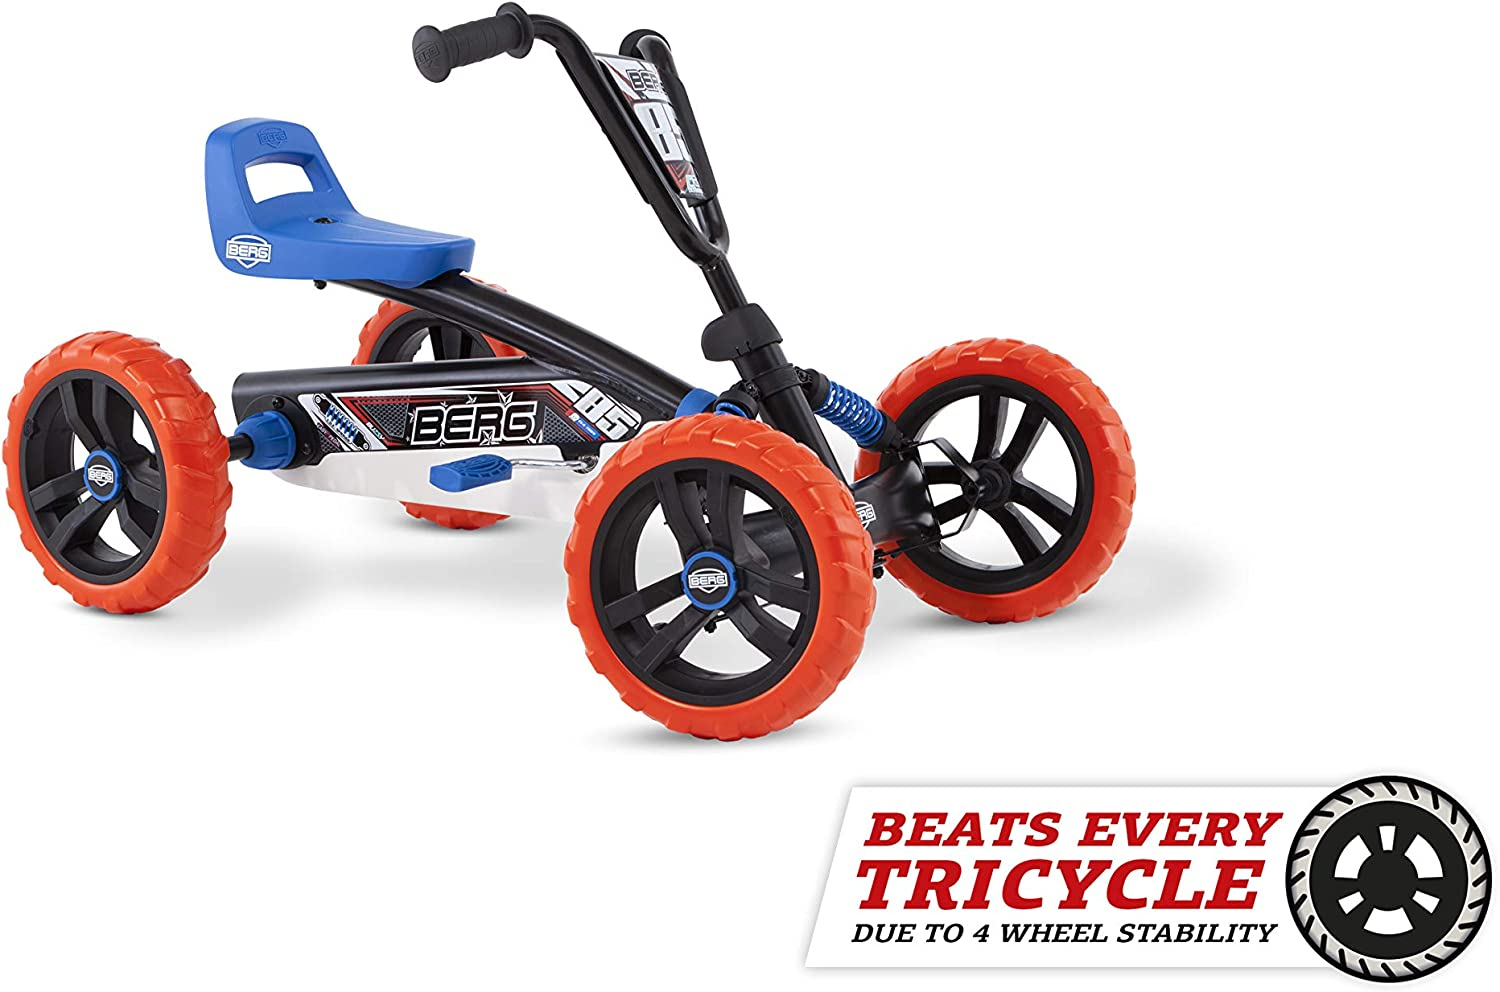 Berg Pedal Car Buzzy Nitro | Pedal Go Kart, Ride On Toys for Boys and Girls, Go Kart, Toddler Ride on Toys, Outdoor Toys, Beats Every Tricicle, Adaptable to Body Lenght, Go Cart for Ages 2-5 Years